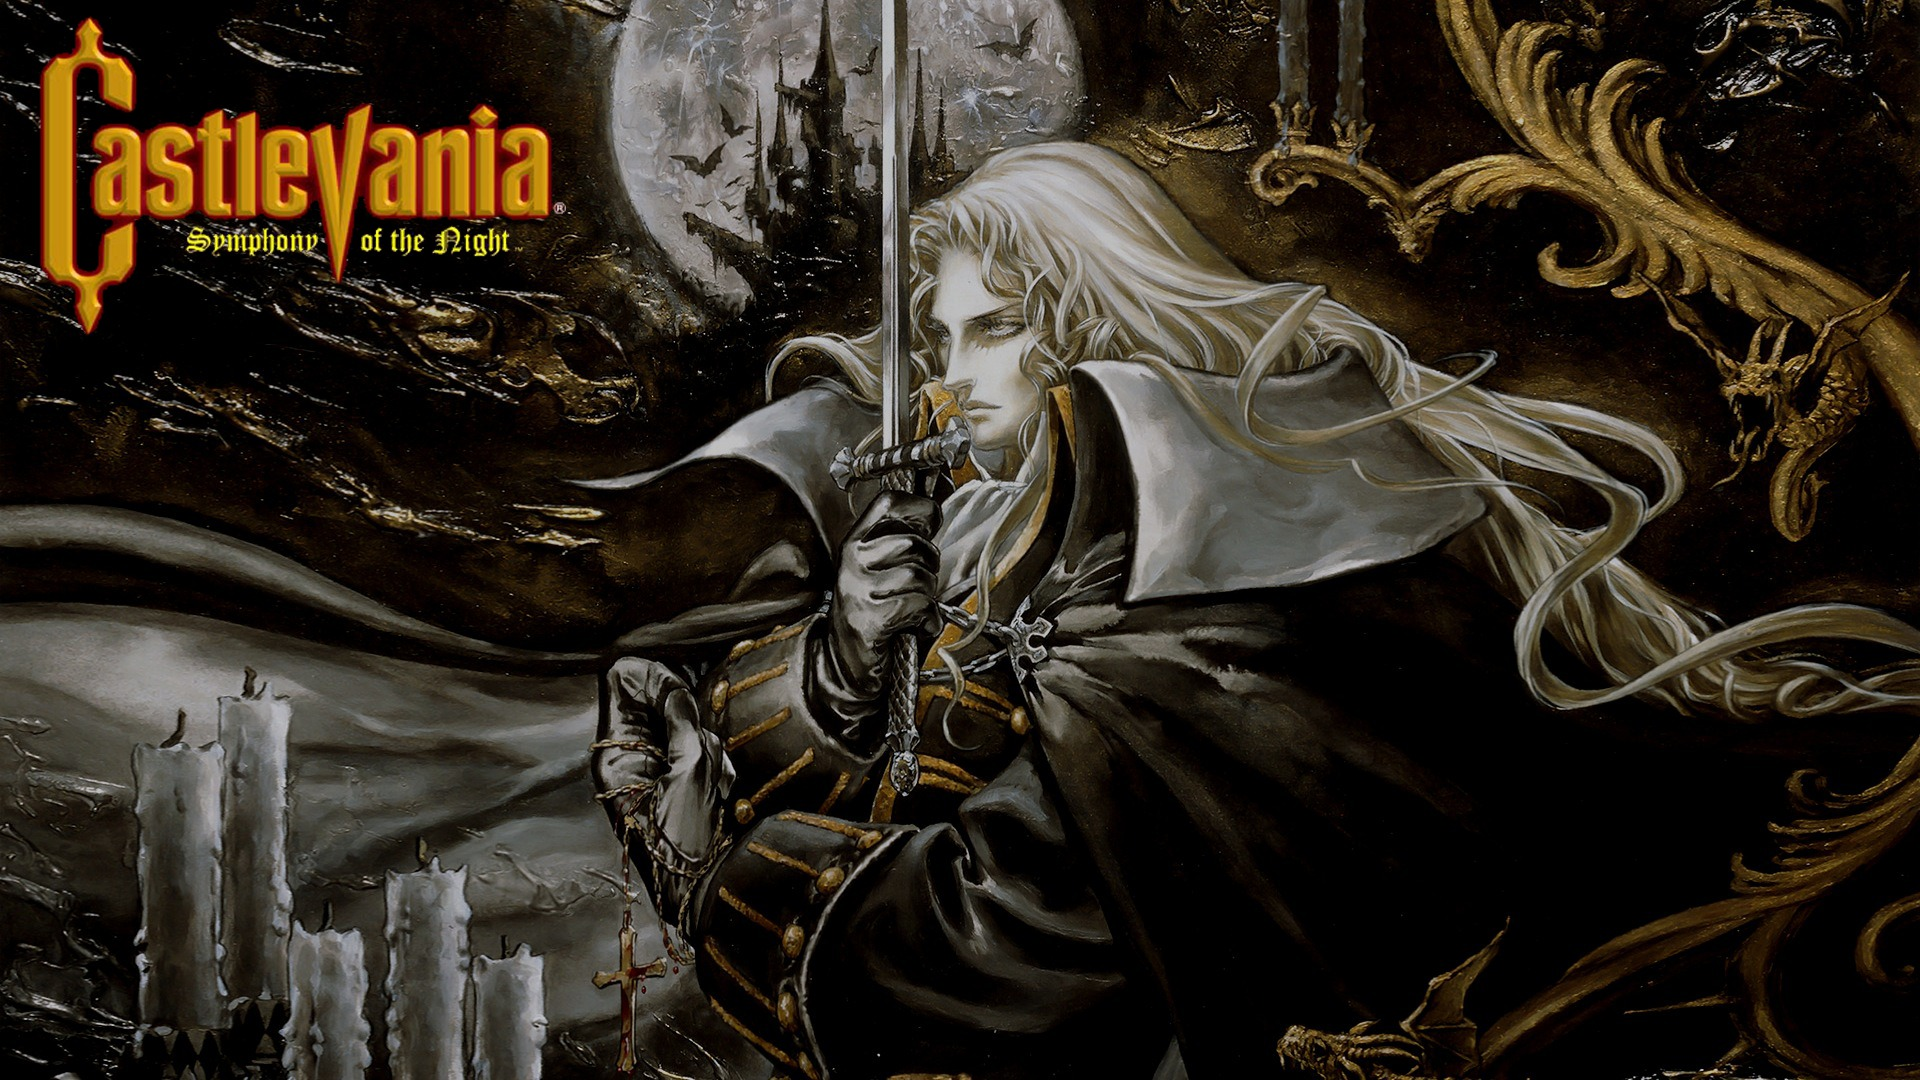 Castlevania Symphony of the Night: Celebrating 21 Years of Fright.